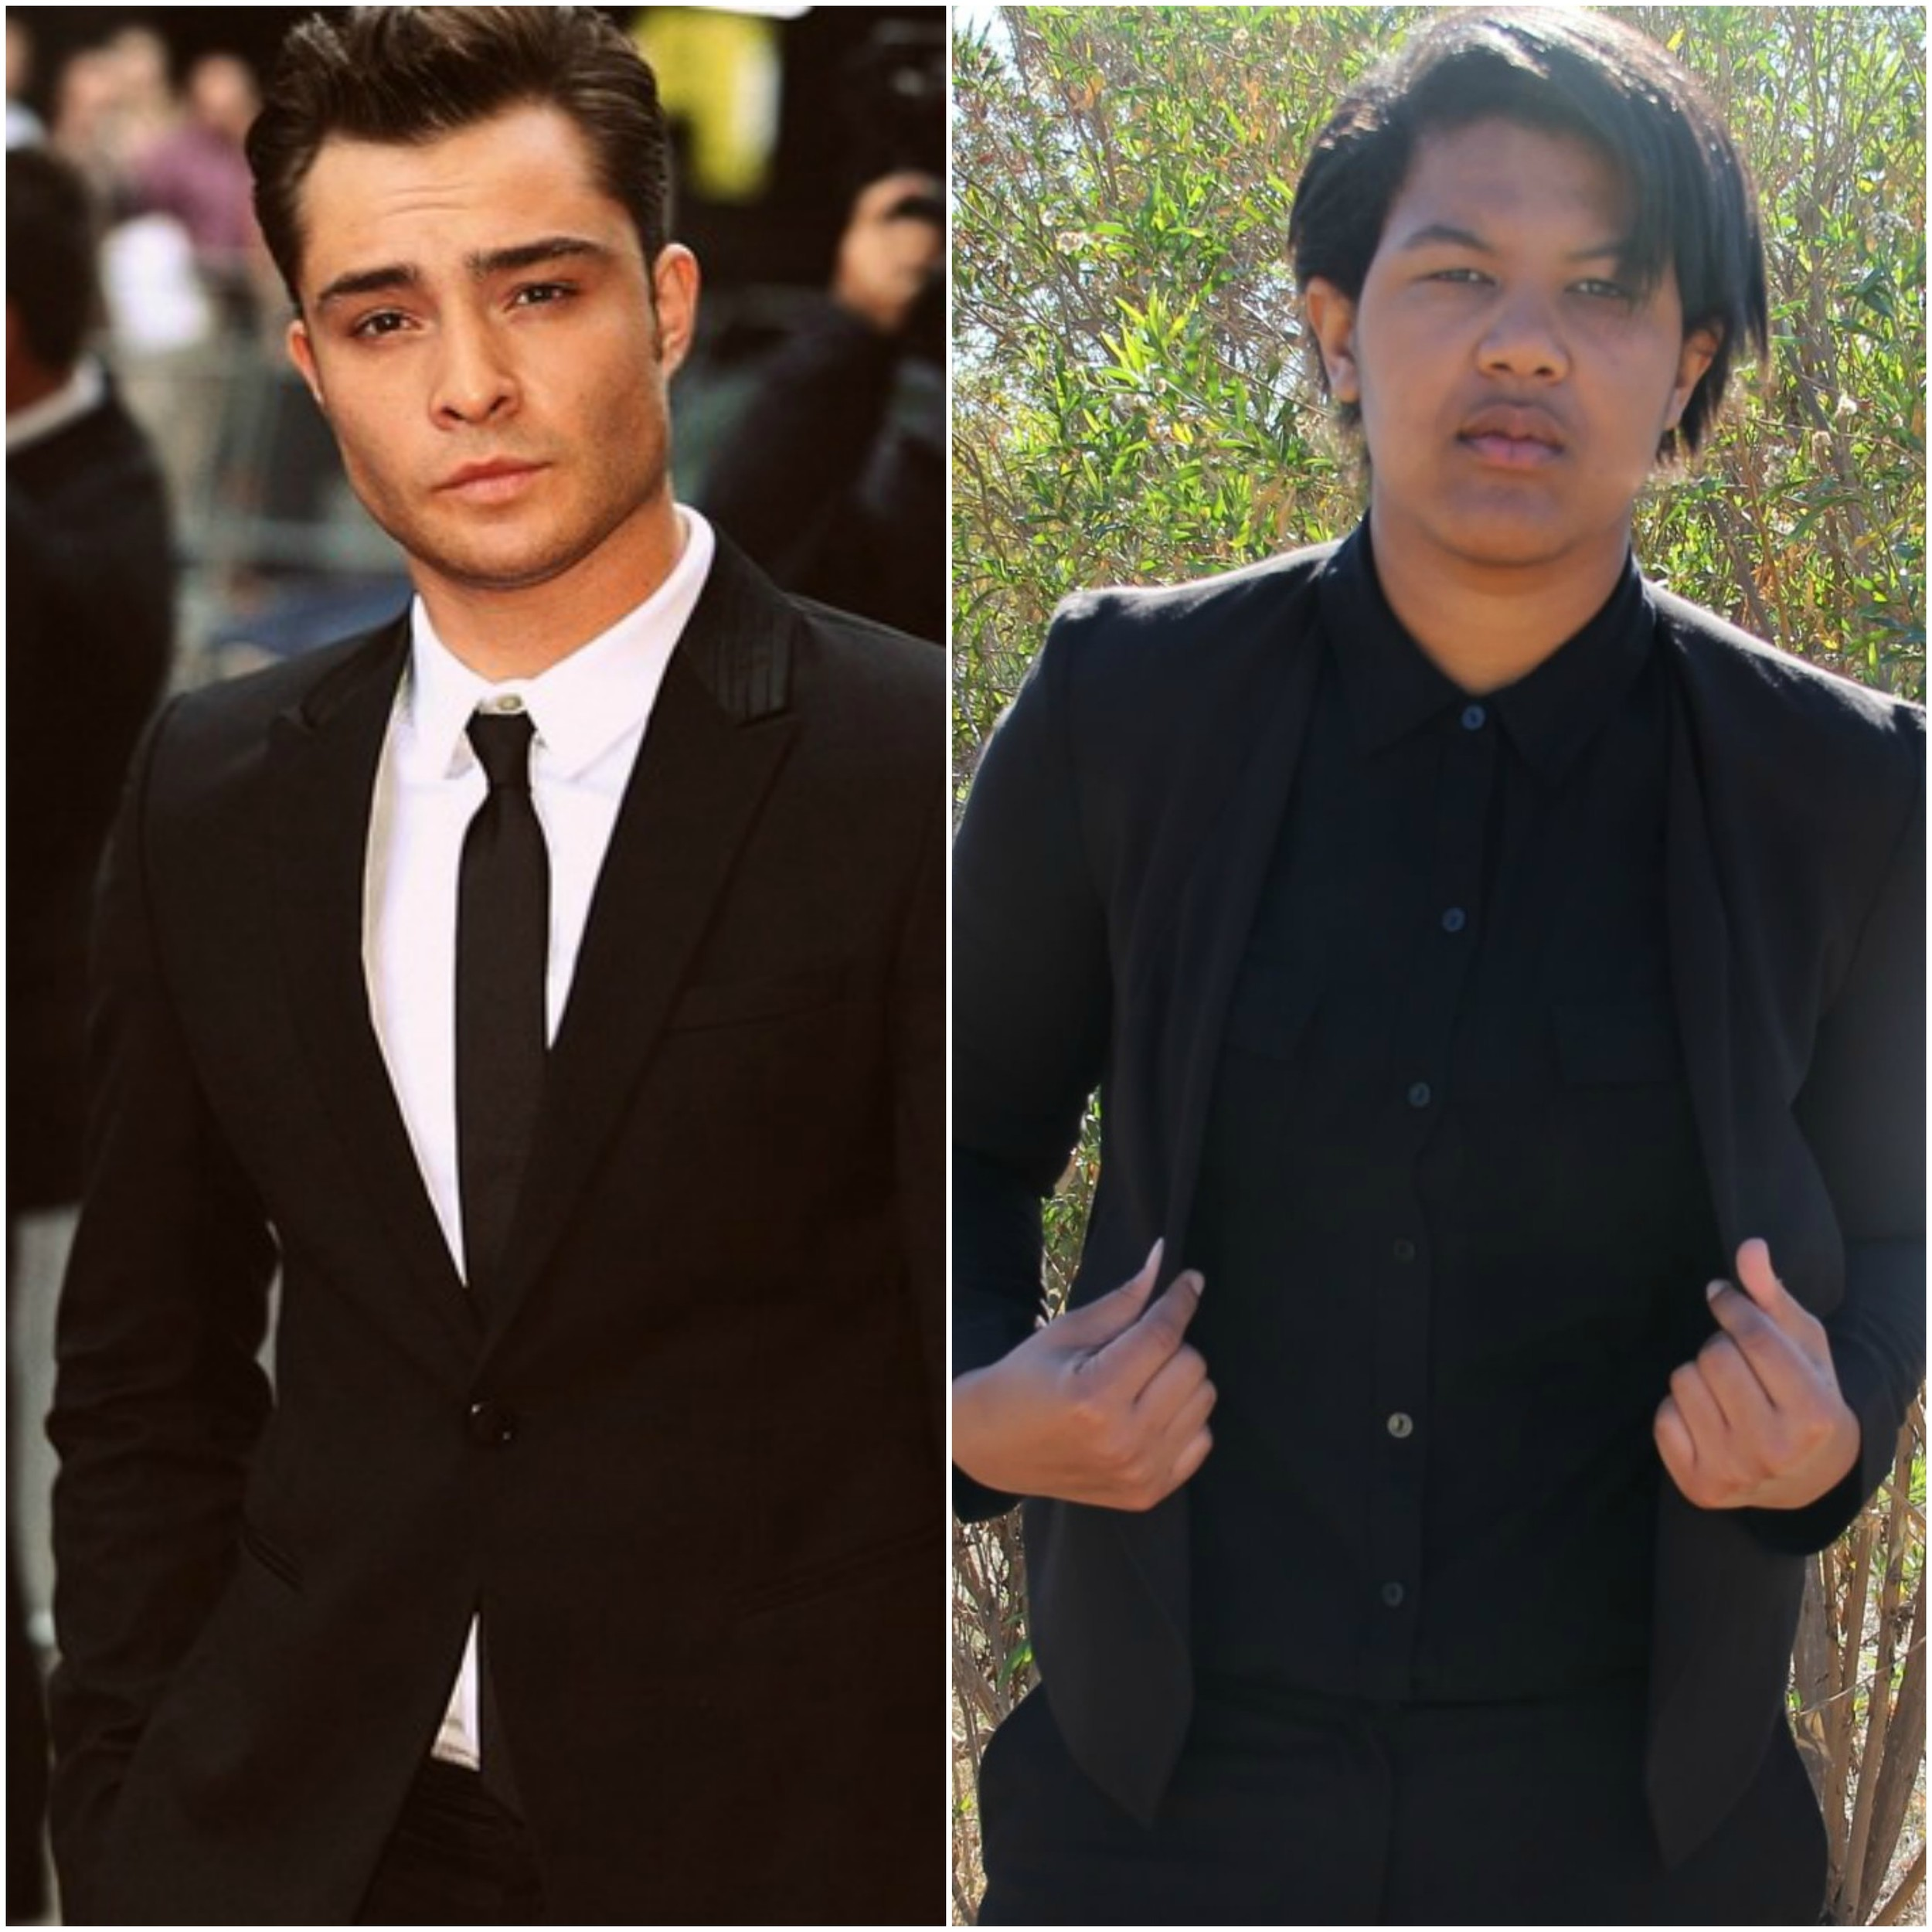 I will say, I do pull off Chuck Bass pretty well, if only in aesthetics.